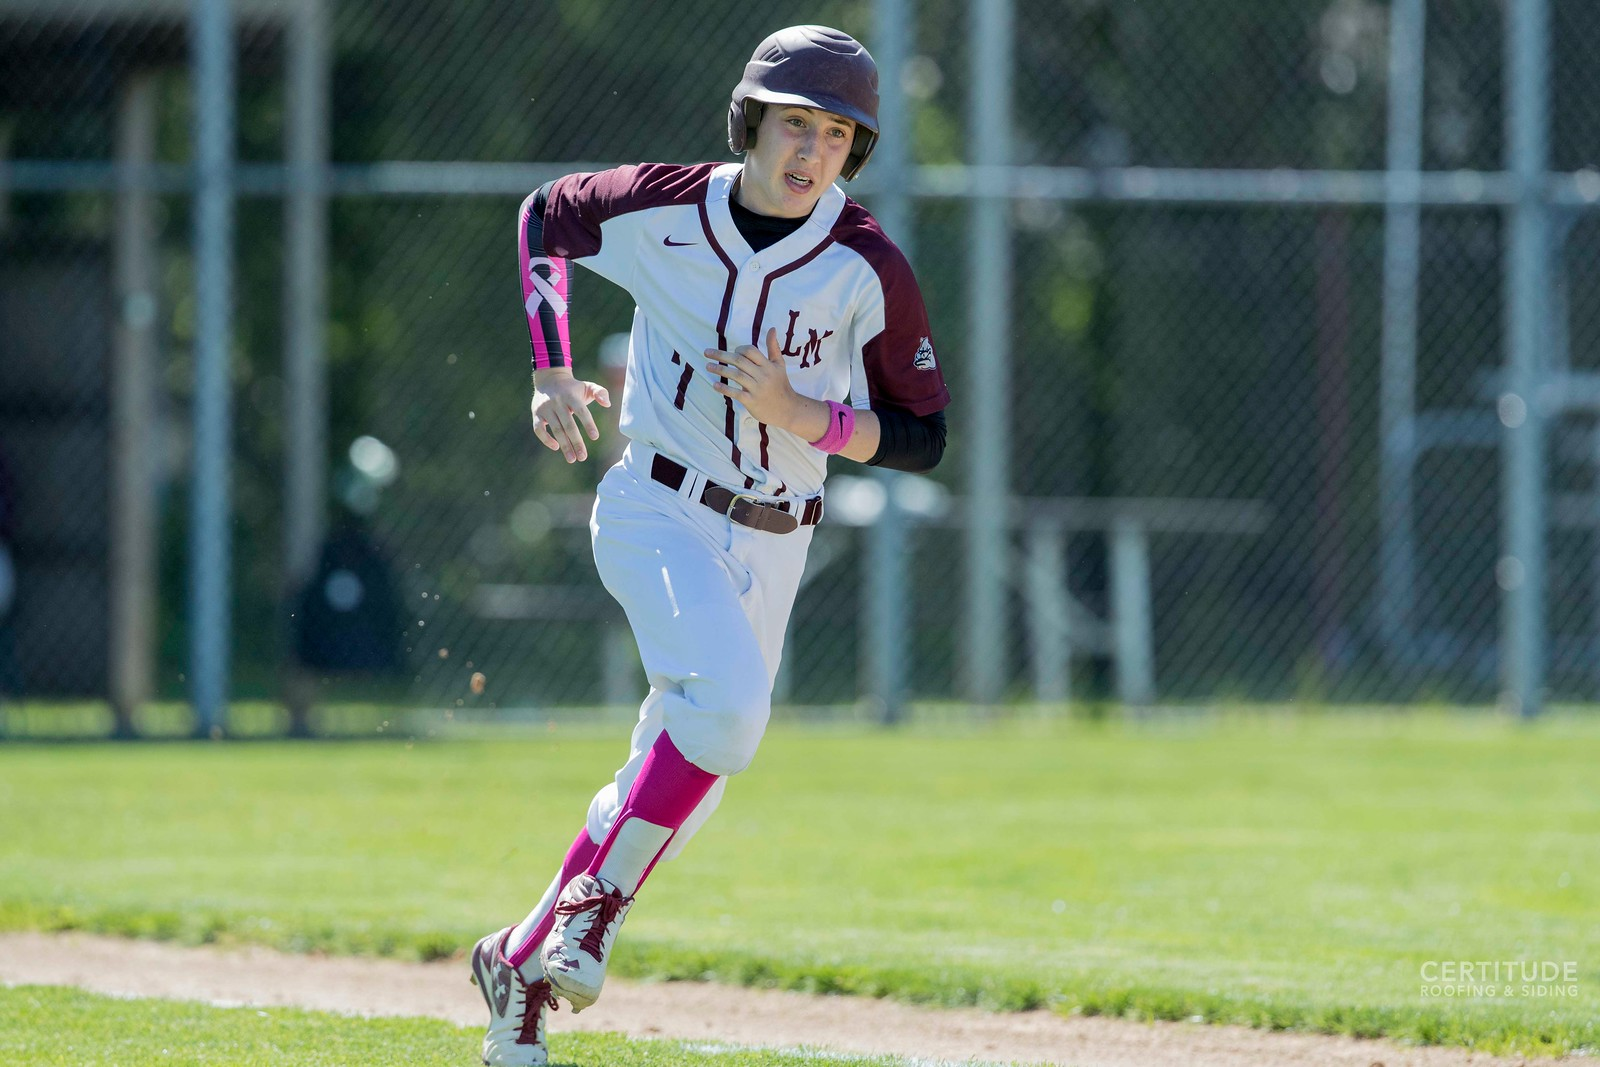 Lower_Merion_BASEBALL_vs_Conestoga-69